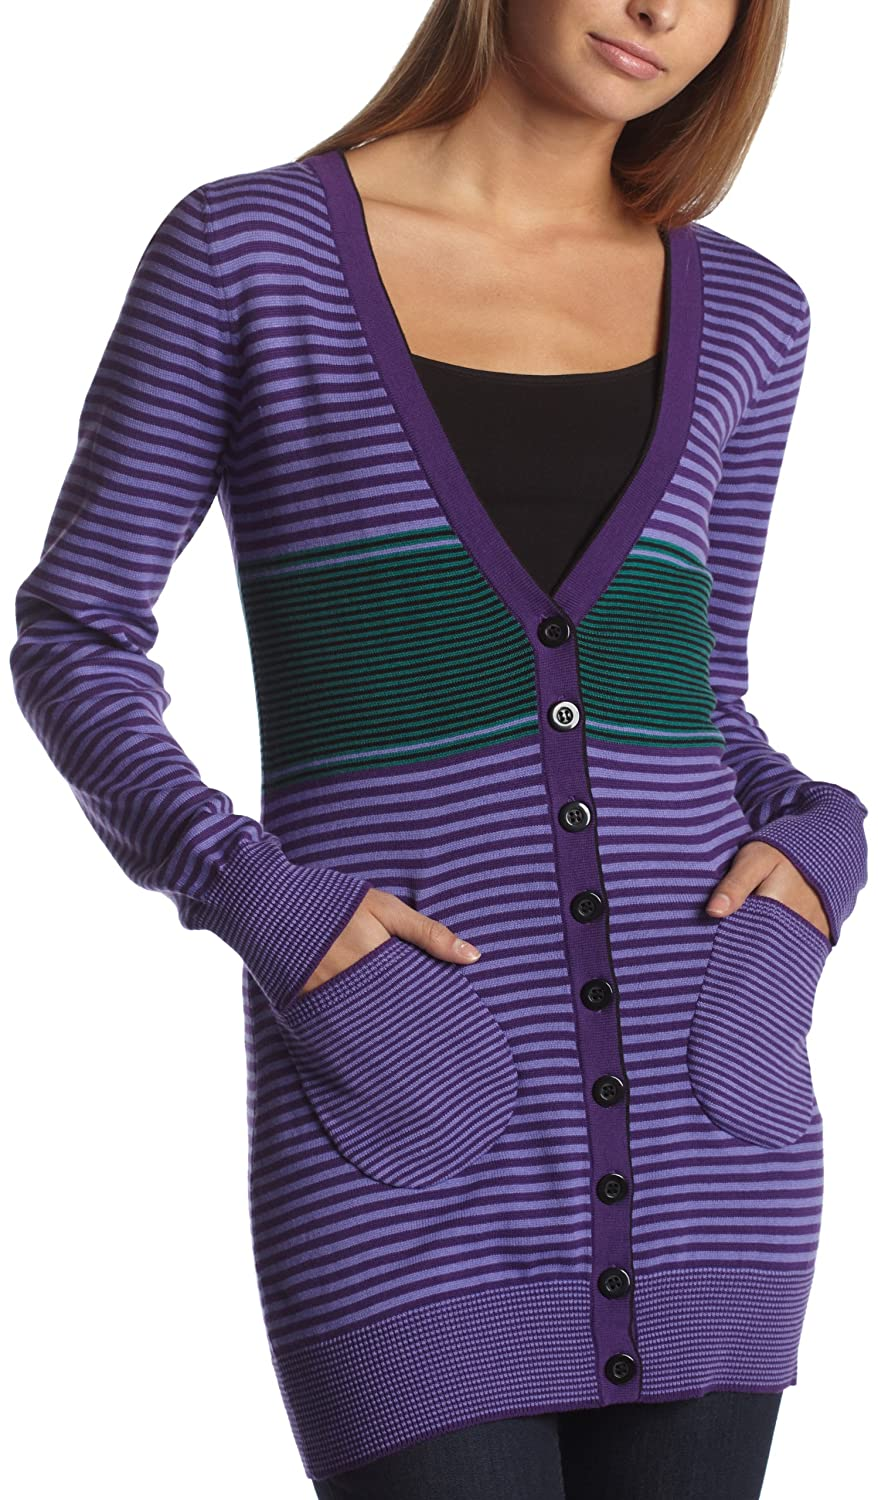 Kensie Girl Junior's Striped Long- Sleeve Cardigan